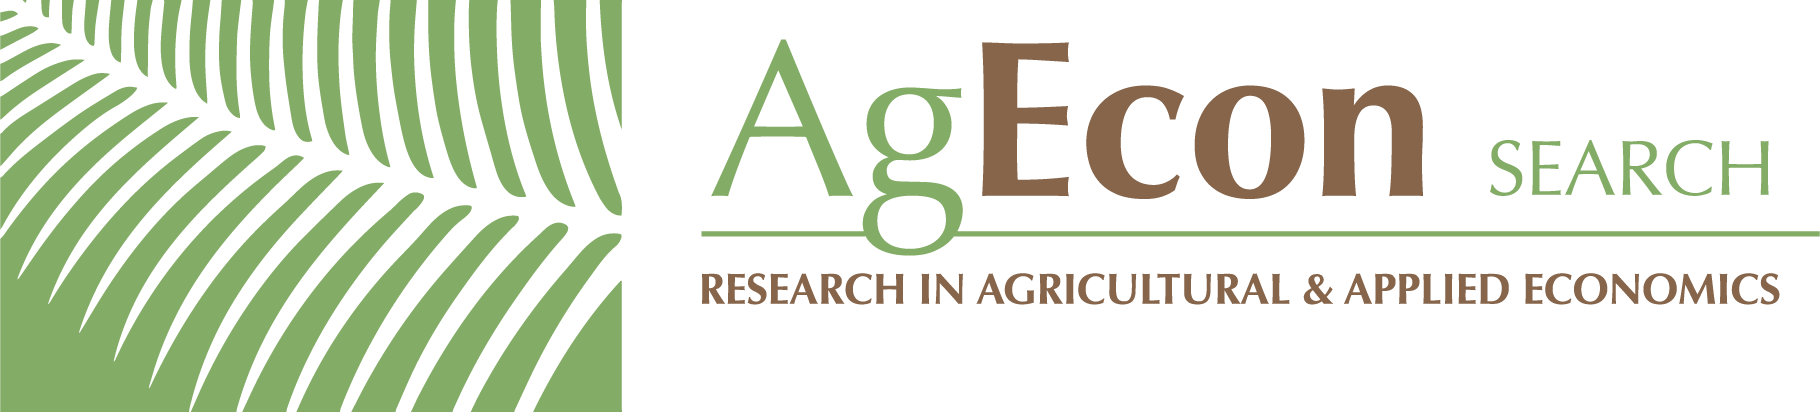 AgEcon search logo